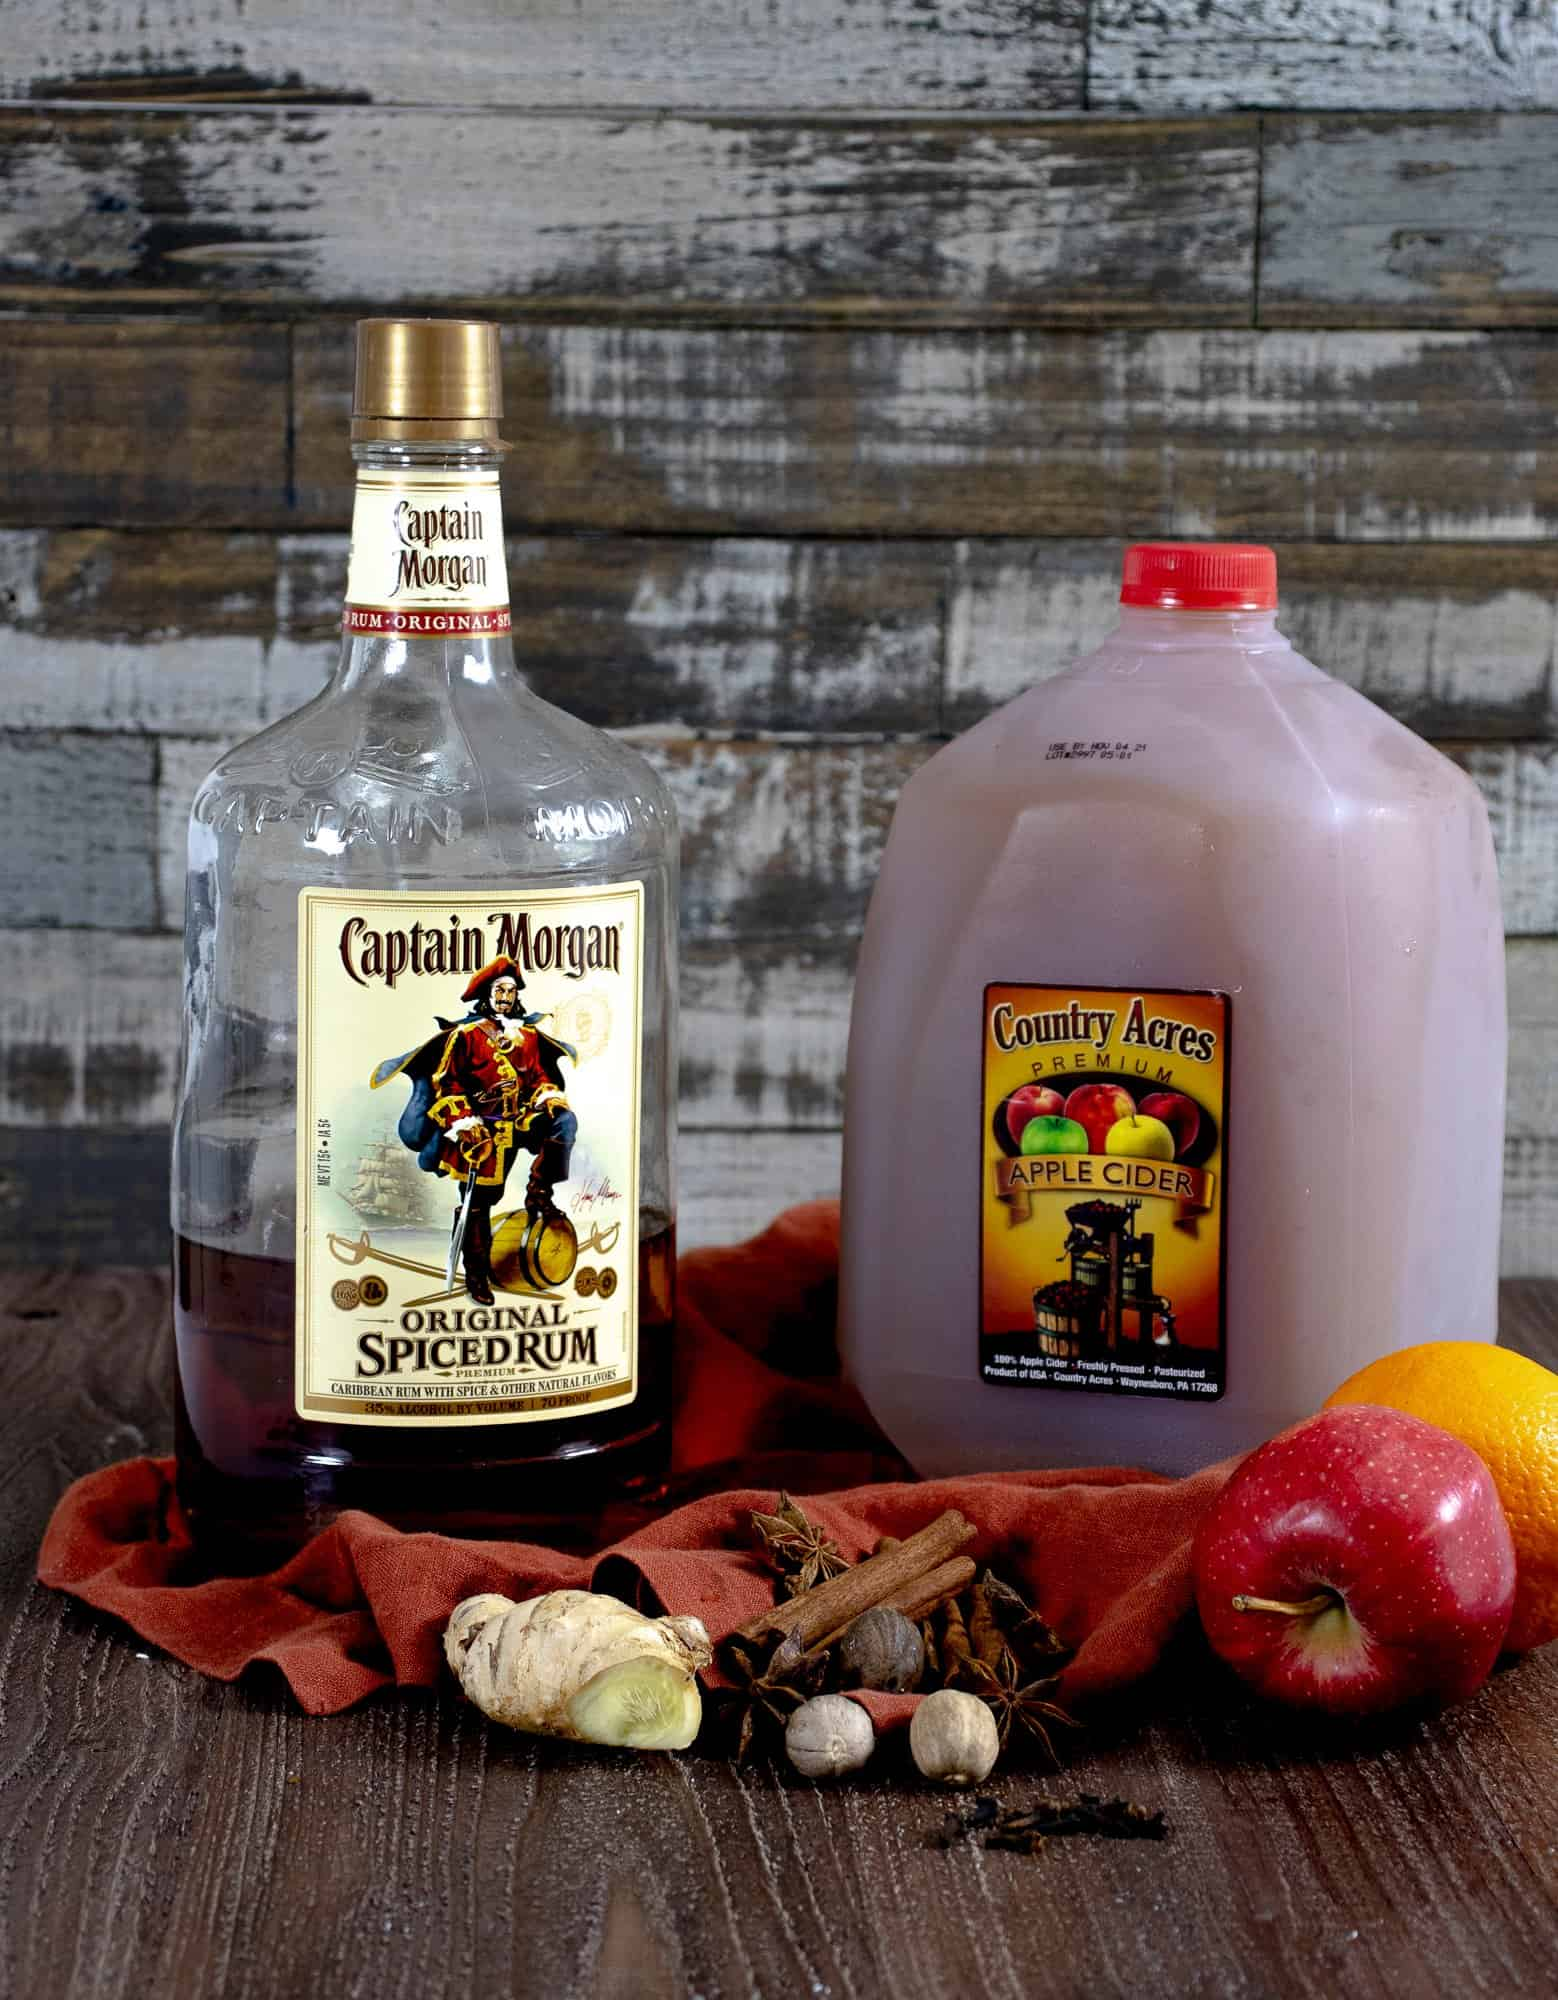 Spiced rum, apple cider, apples, oranges and spices on table to make your own homemade spiked apple cider.